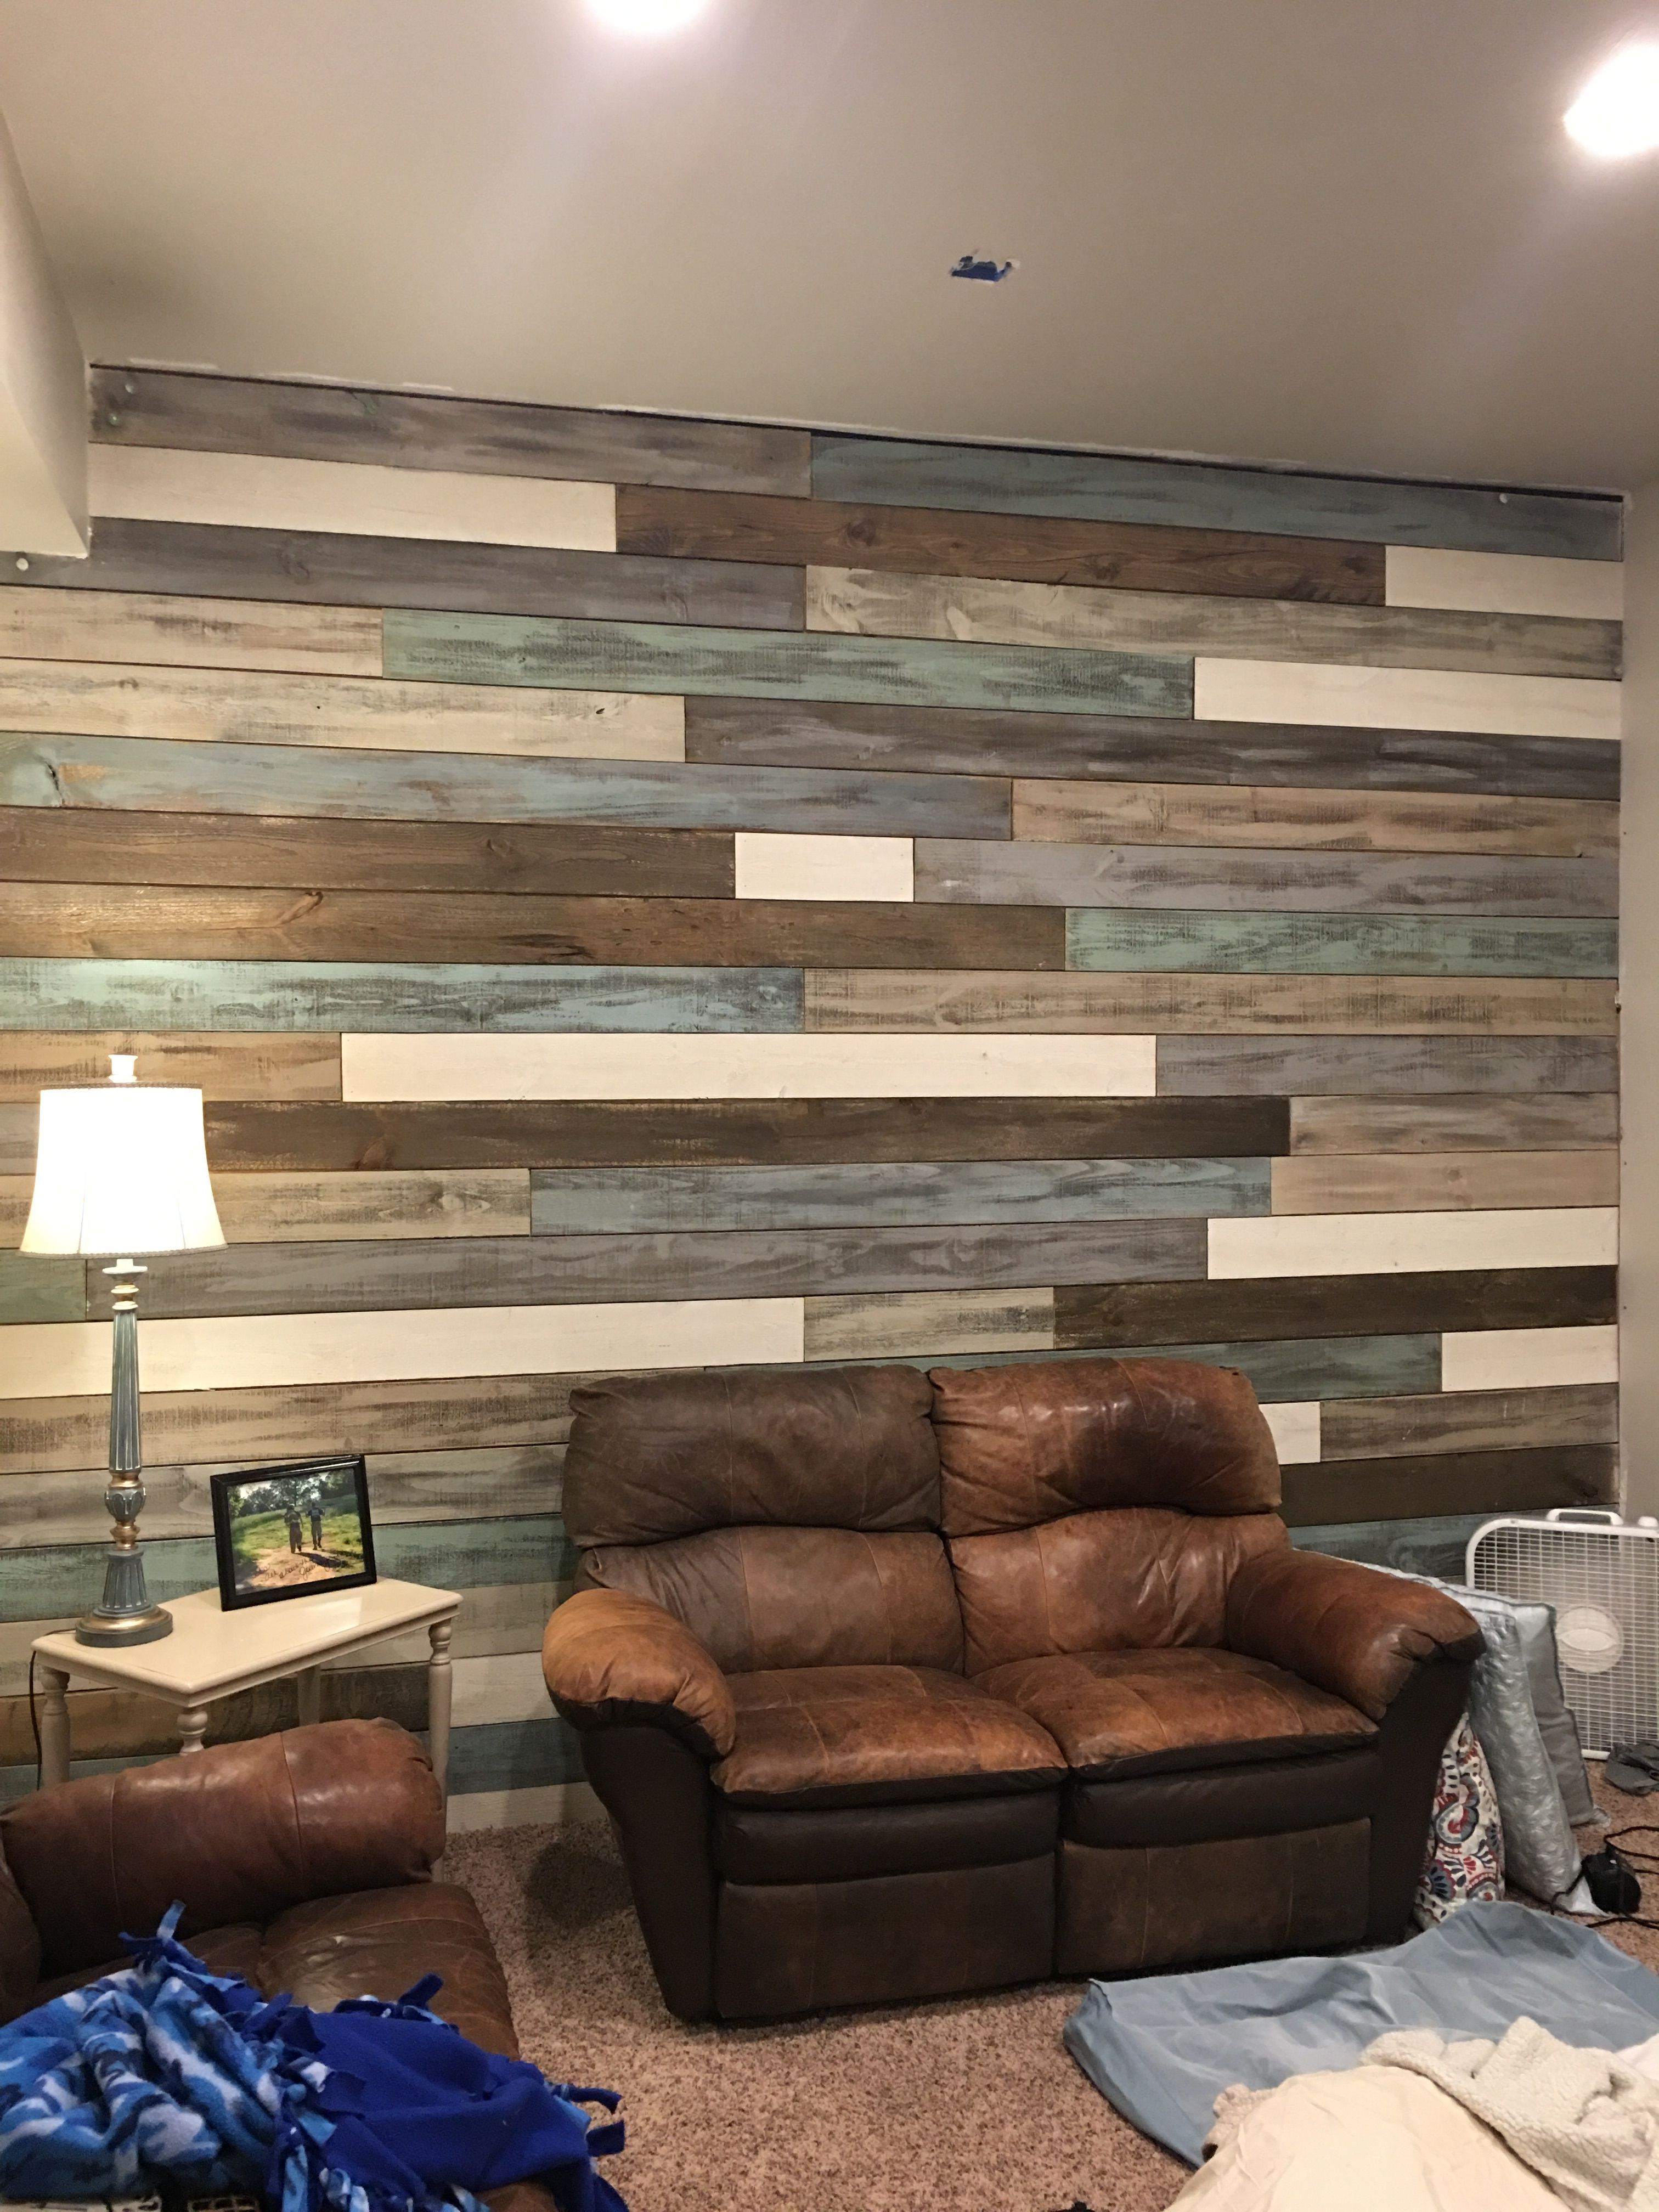 wood wall living room walls decor furniture and cabinet paint home how about a using 1 67 fence boards rethunk junk this was done cotton sandstone seaside blue grass driftwood